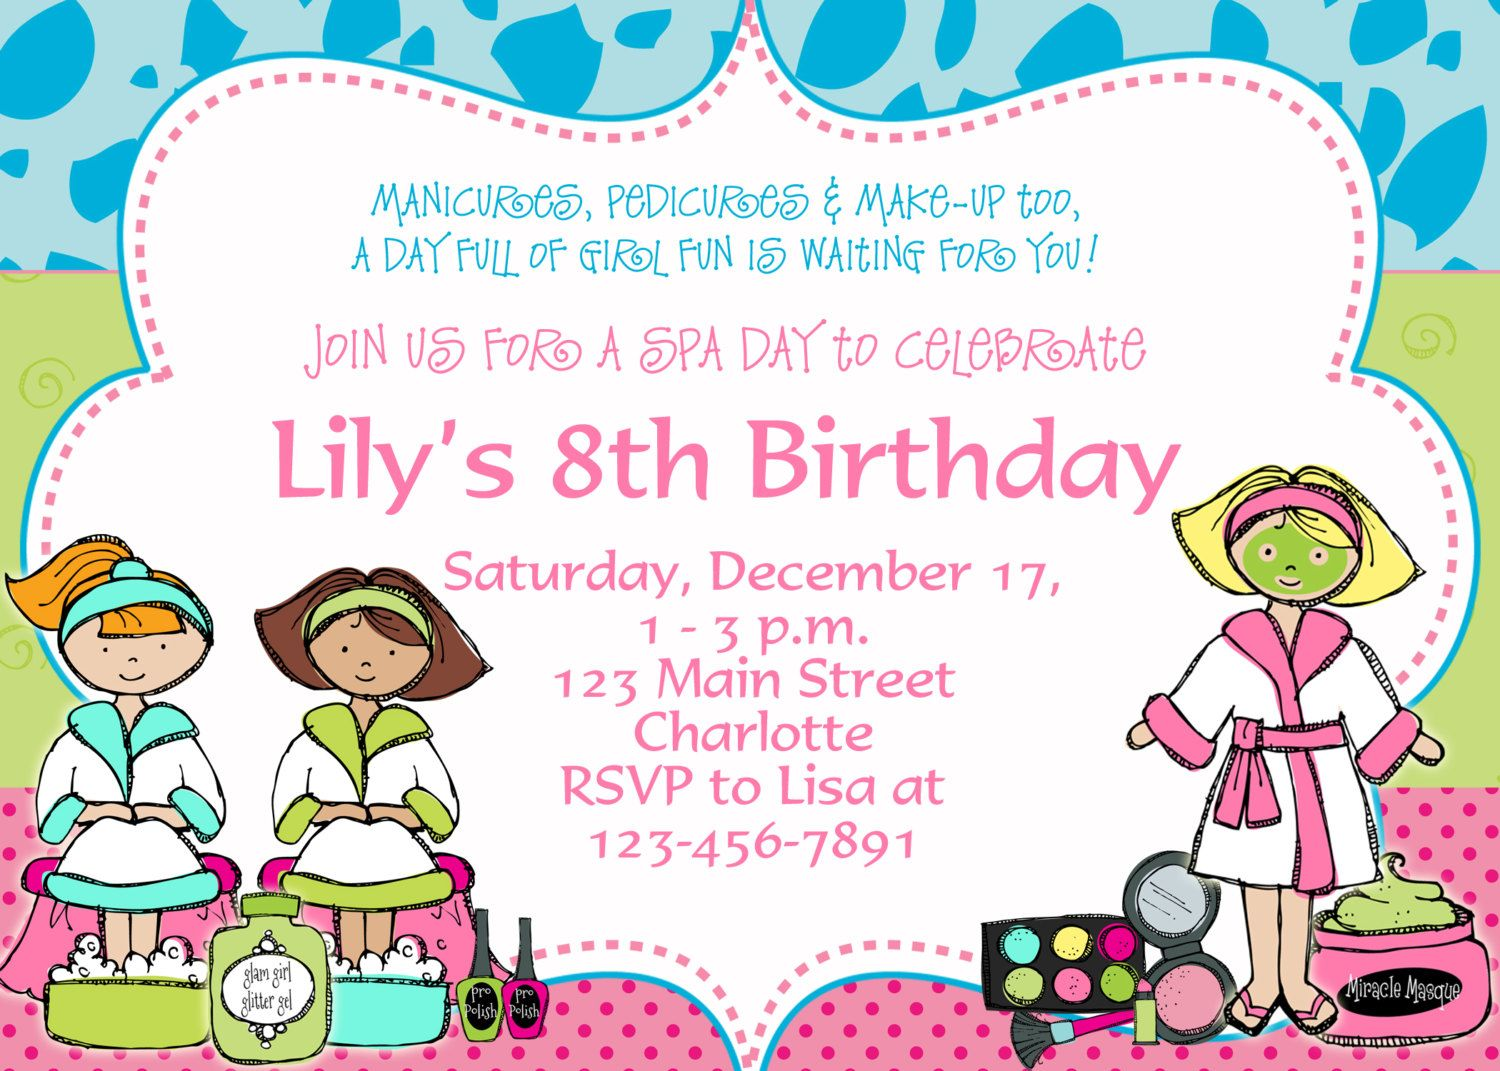 Printable Spa Birthday Party Invitations Spa at Home – Printable Spa Party Invitations